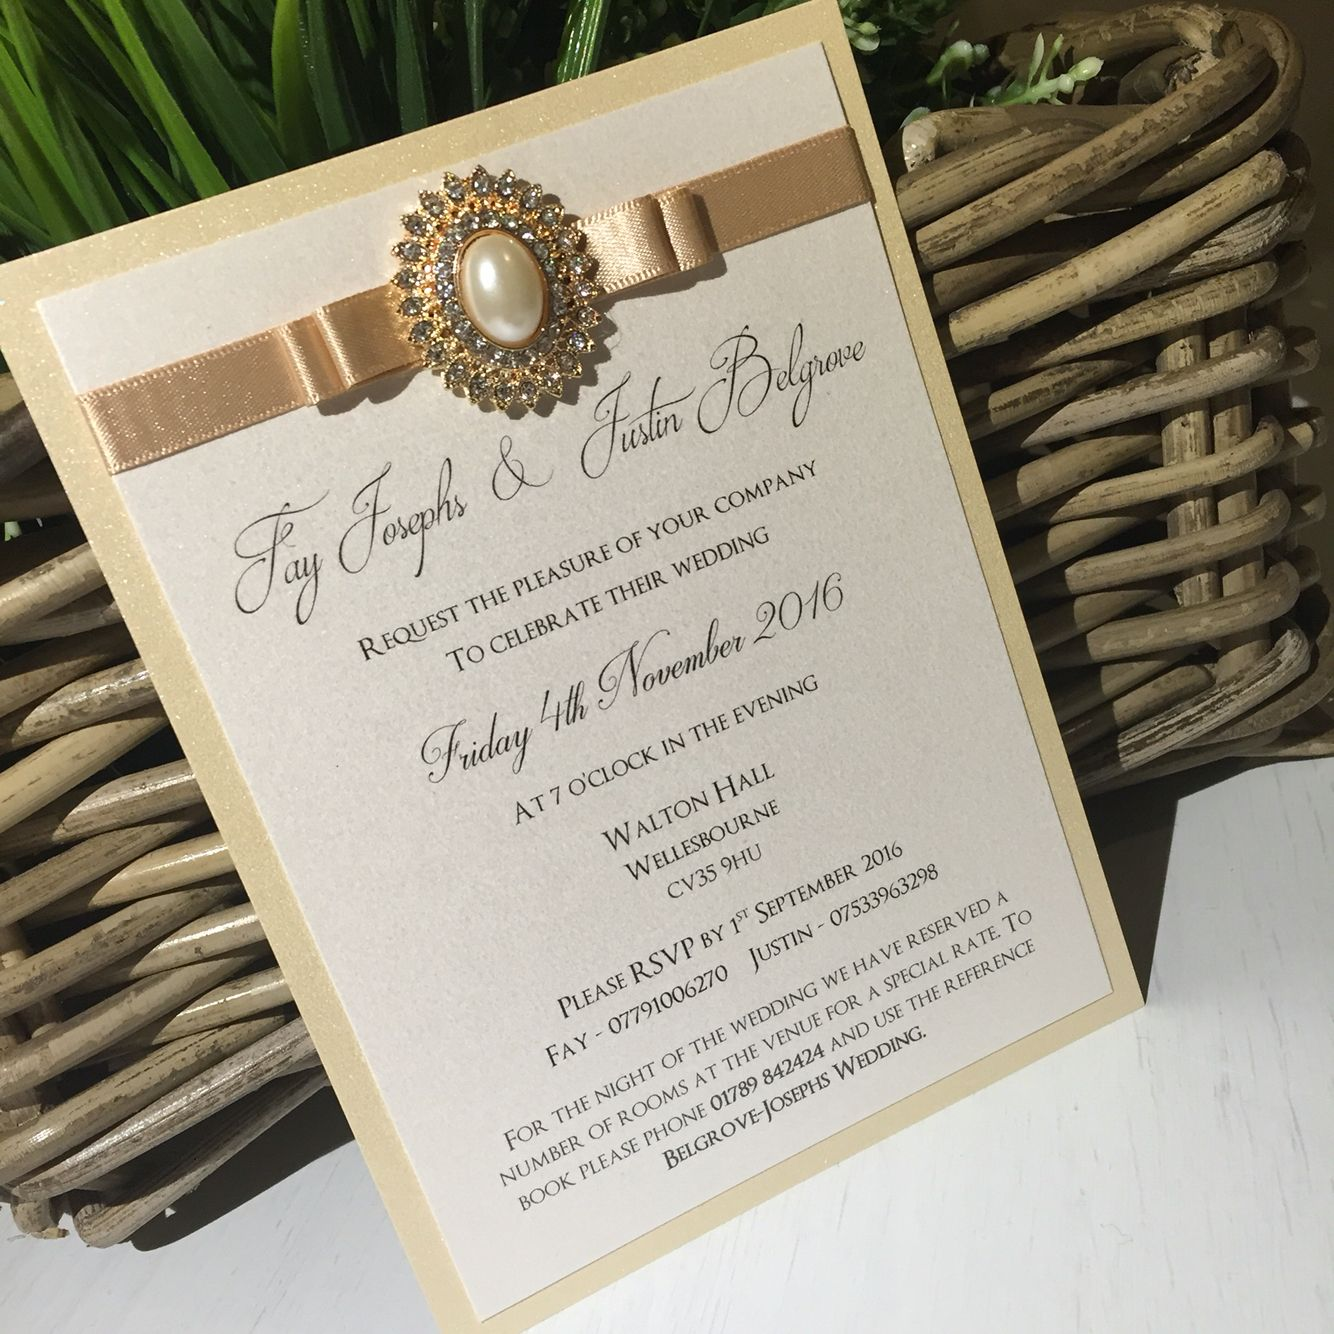 A glamorouschic Evening invitation to match the